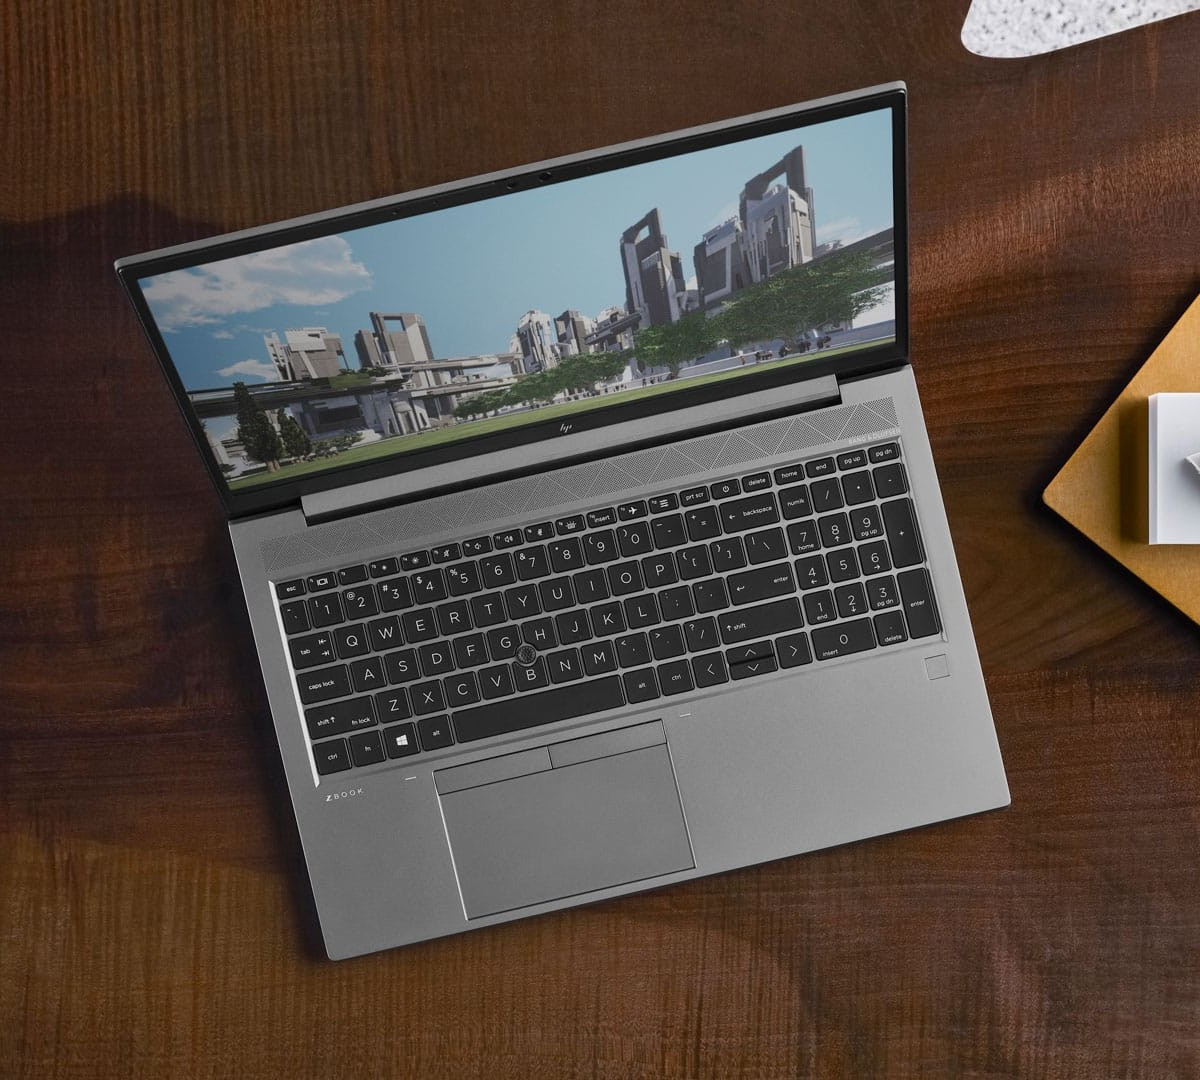 HP ZBook Firefly 14 & 15 G7 Mobile Workstations are light and compact for work on the go